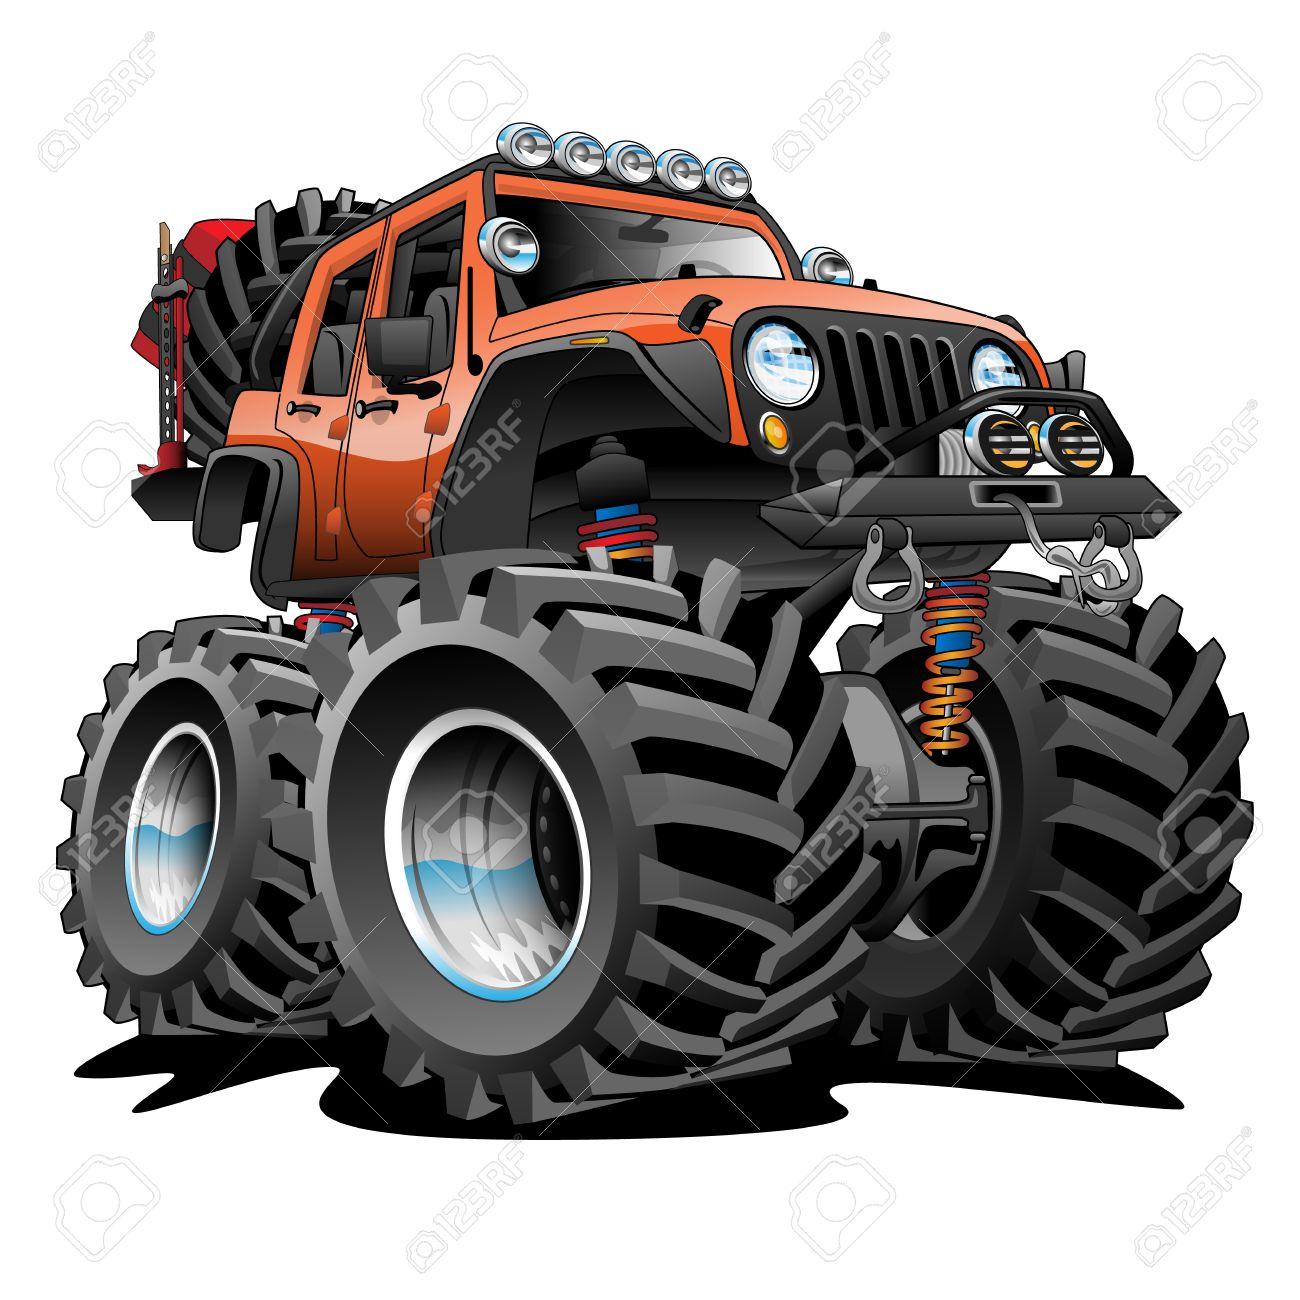 4X4 Off Road >> 4x4 Off Road Vehicle Cartoon Illustration